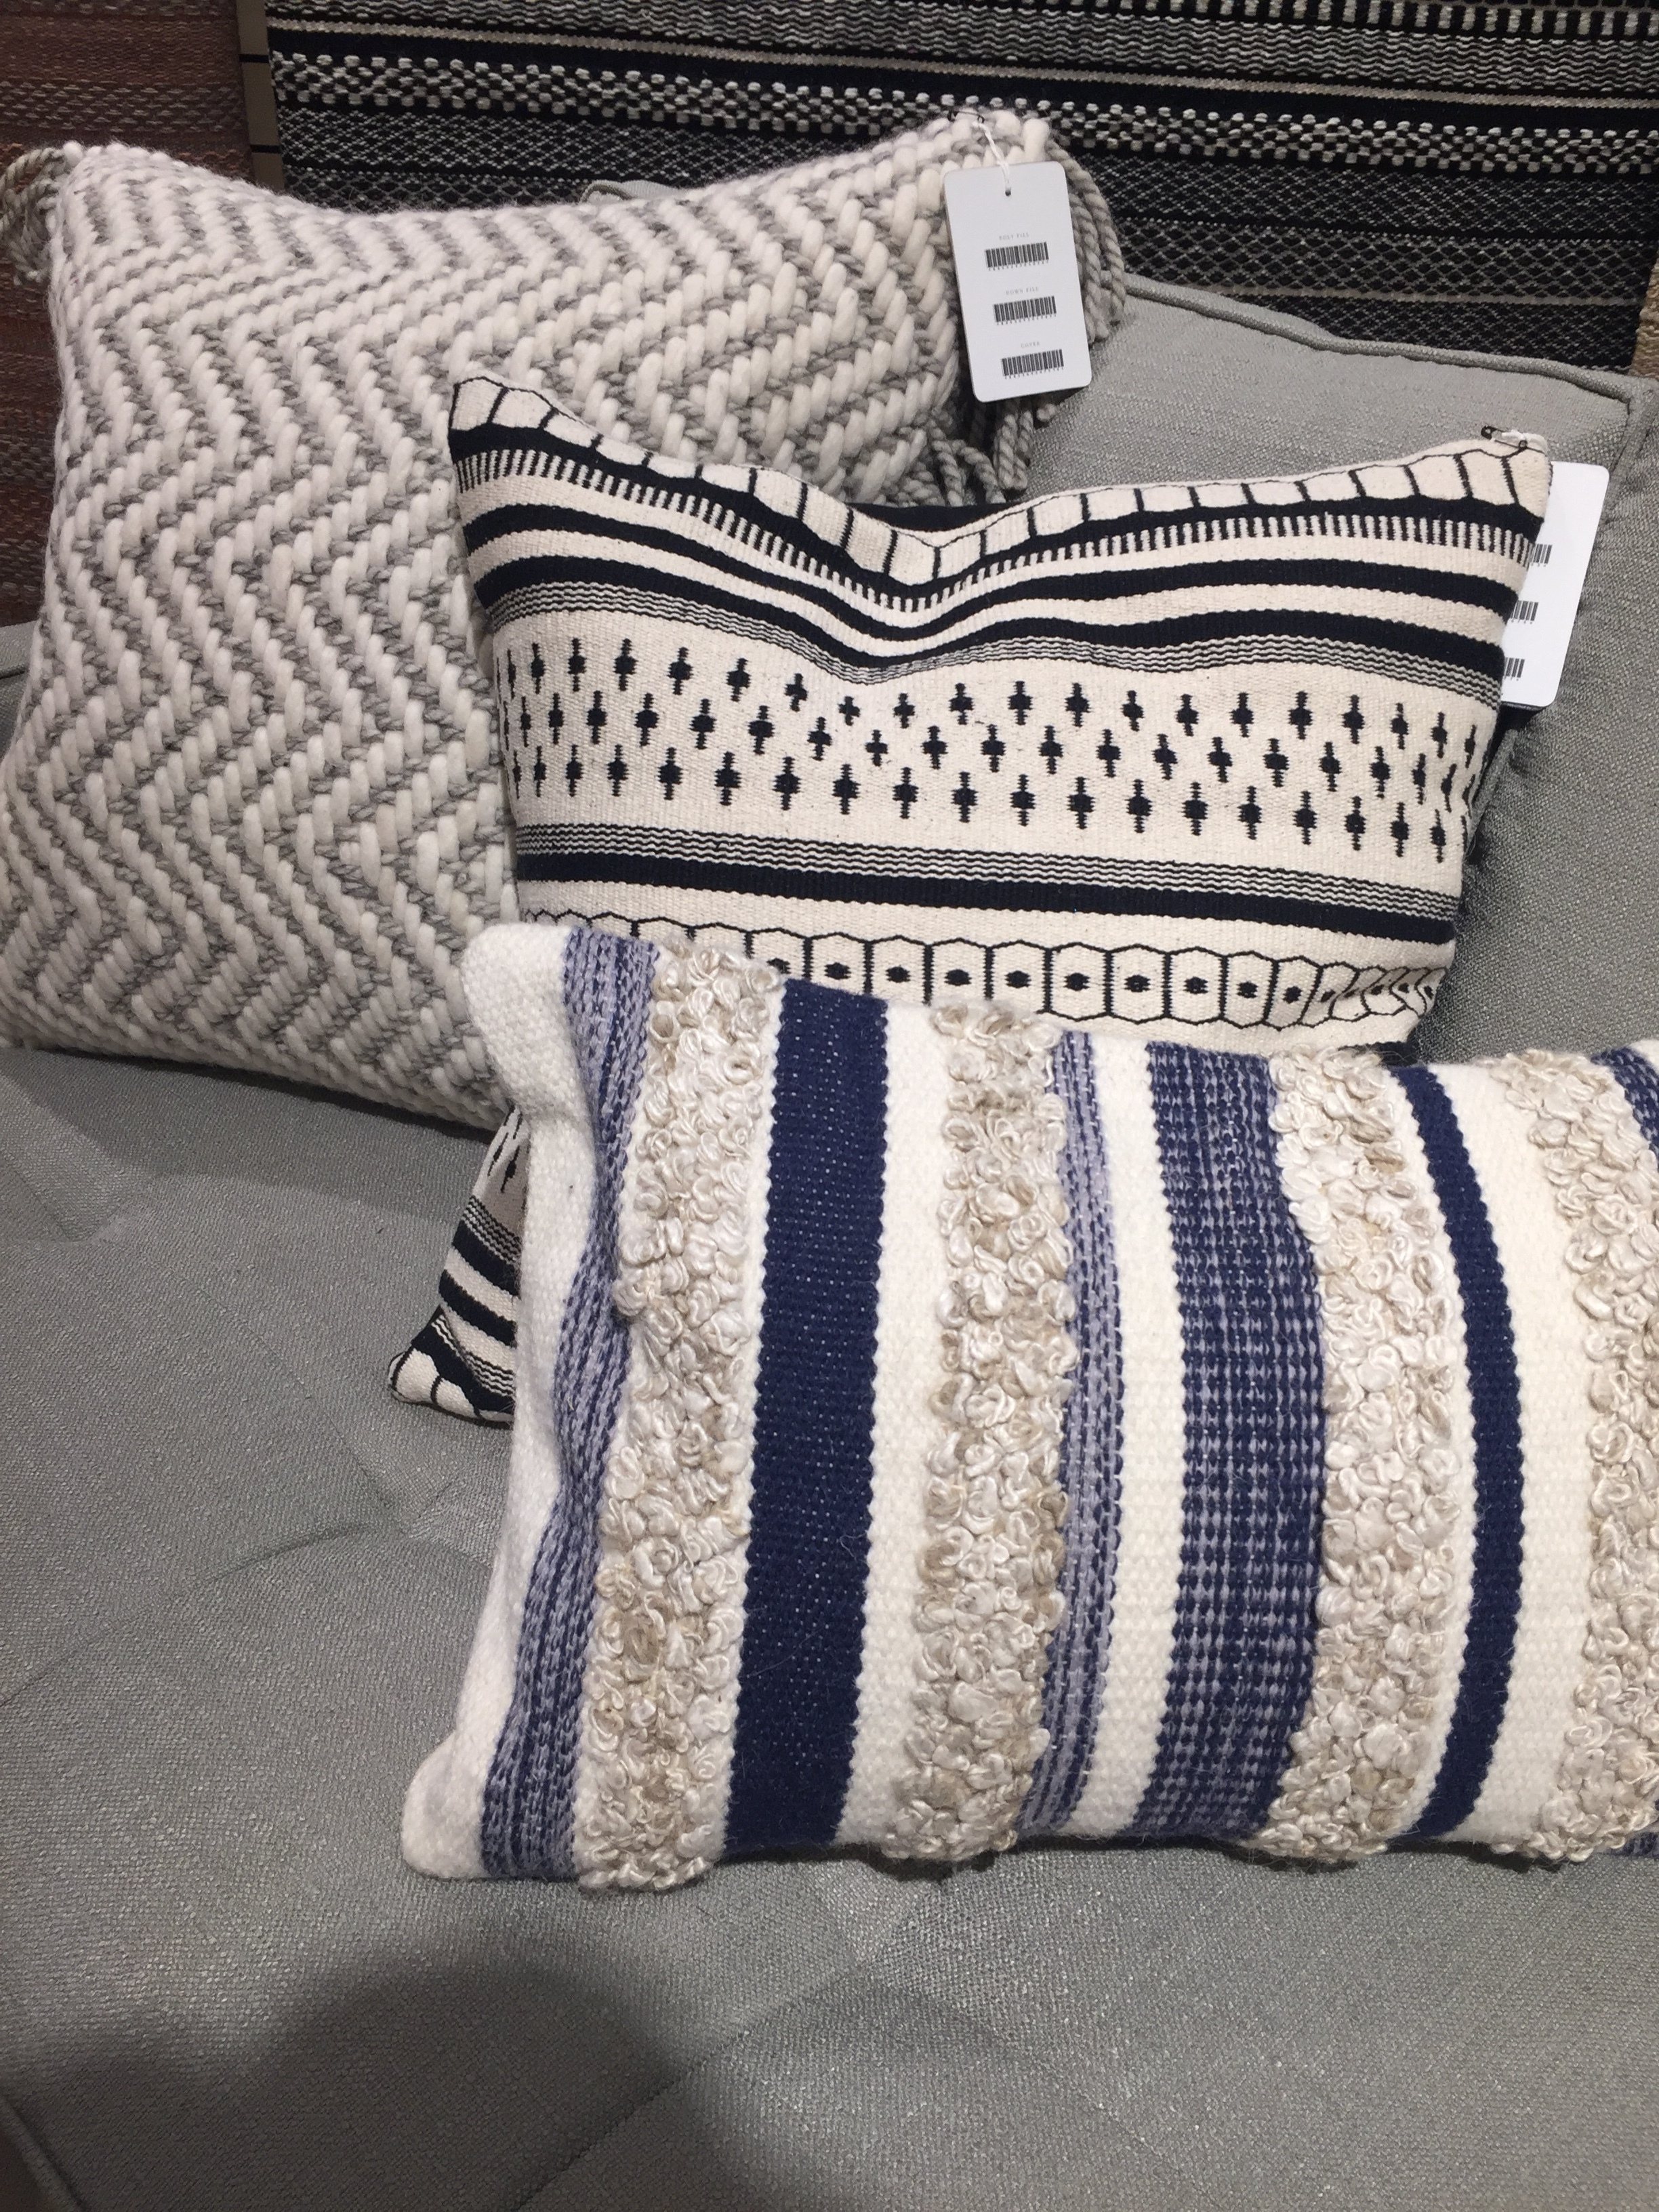 The throw pillows are from Loloi Rugs showroom. What a wonderful mix of color, pattern and texture